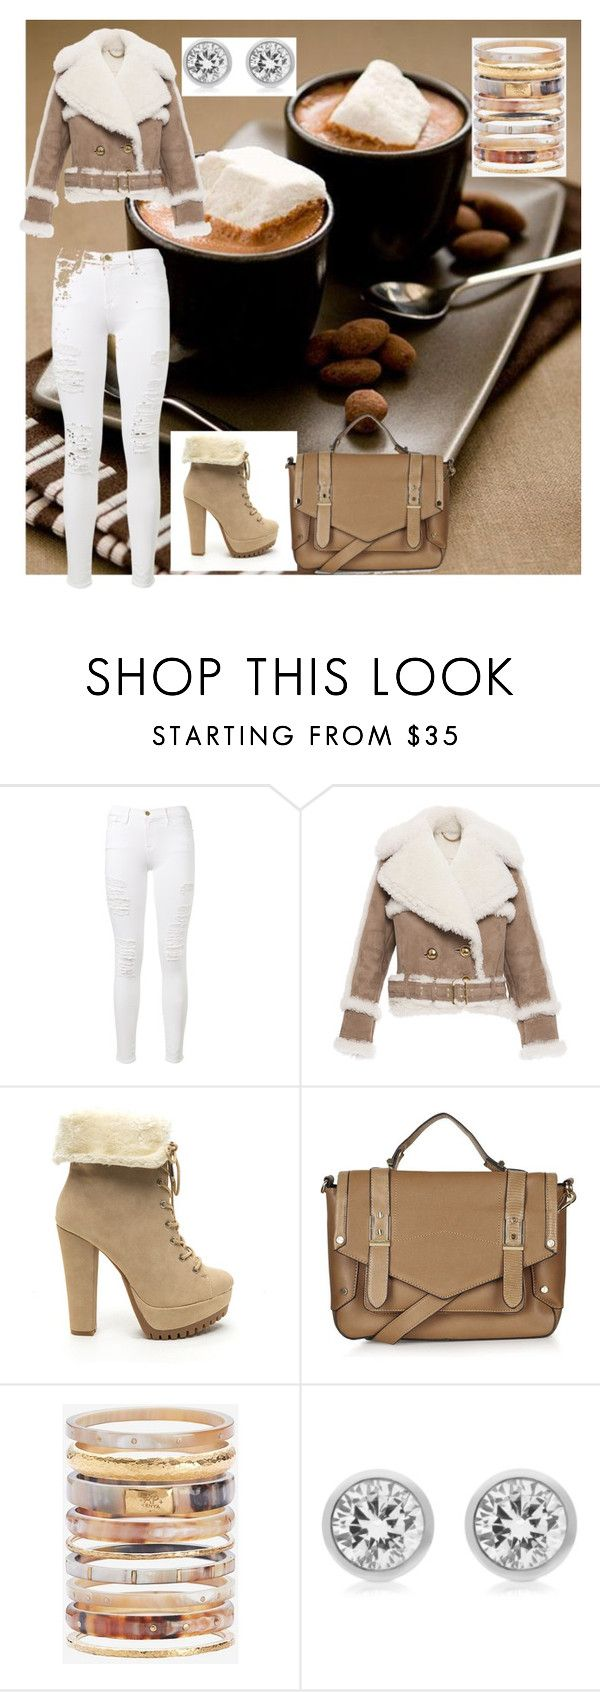 """""""Coffee date outfit"""" by angieinspires ❤ liked on Polyvore featuring Frame Denim, Burberry, Topshop, Ashley Pittman, Michael Kors, ootd and angieinspires"""